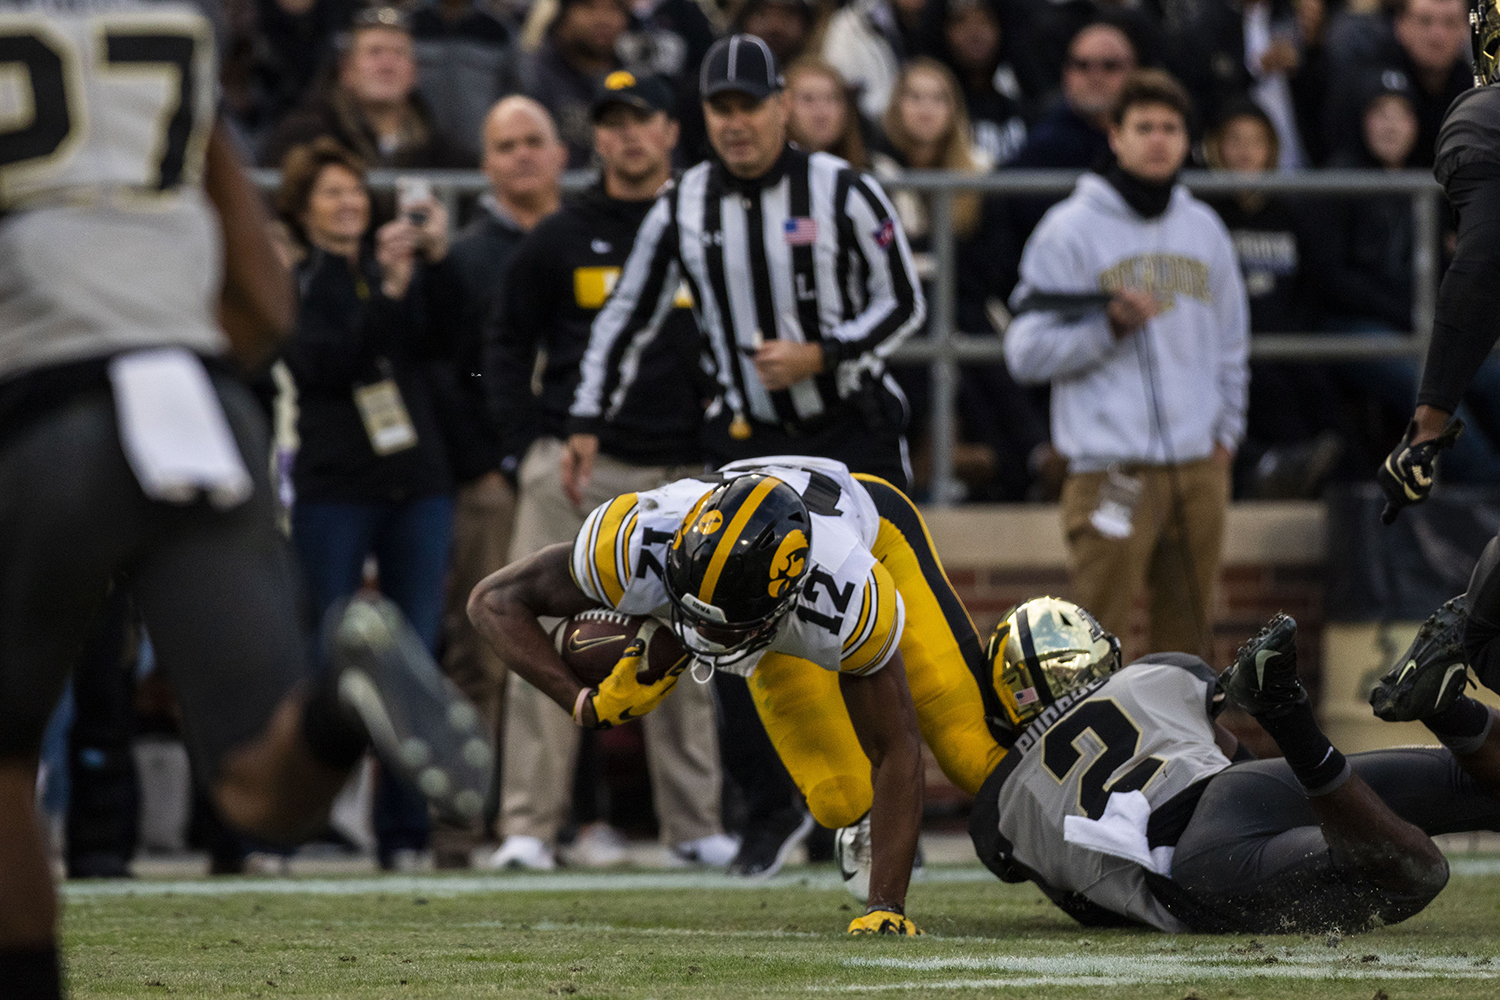 Iowa+wide+receiver+Brandon+Smith+is+tacked+by+Purdue+cornerback+Kennedy+Major+during+the+Iowa%2FPurdue+game+at+Ross-Ade+Stadium+in+West+Lafayette%2C+Ind.+The+Boilermakers+defeated+the+Hawkeyes%2C+38-36%2C+with+a+last+second+field+goal.+